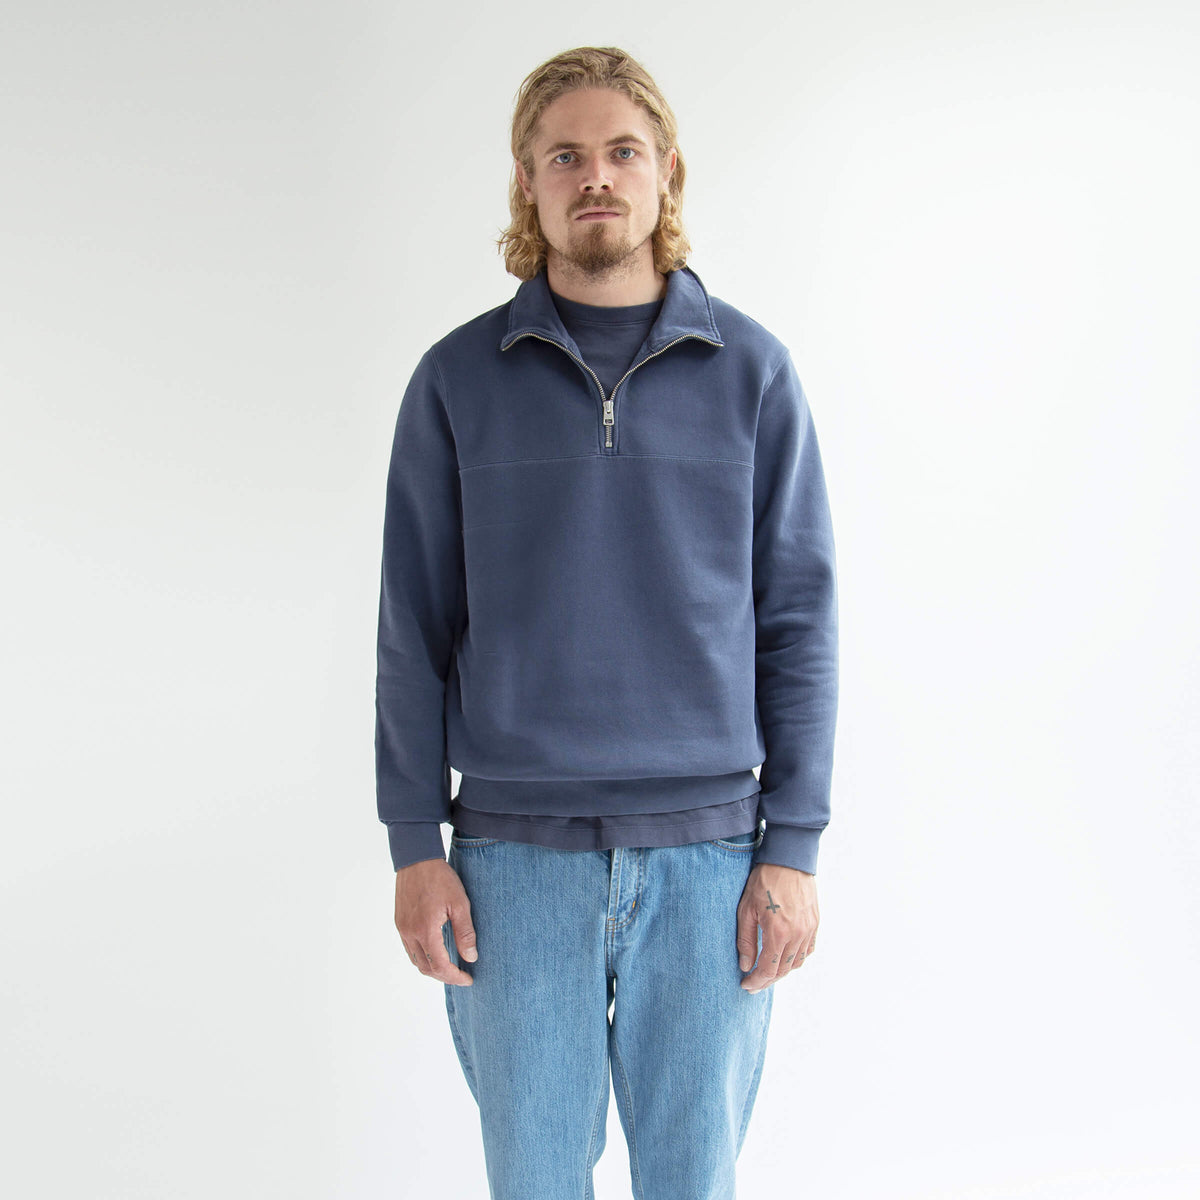 Half-Zip Sweater Dusty Blue - Unrecorded